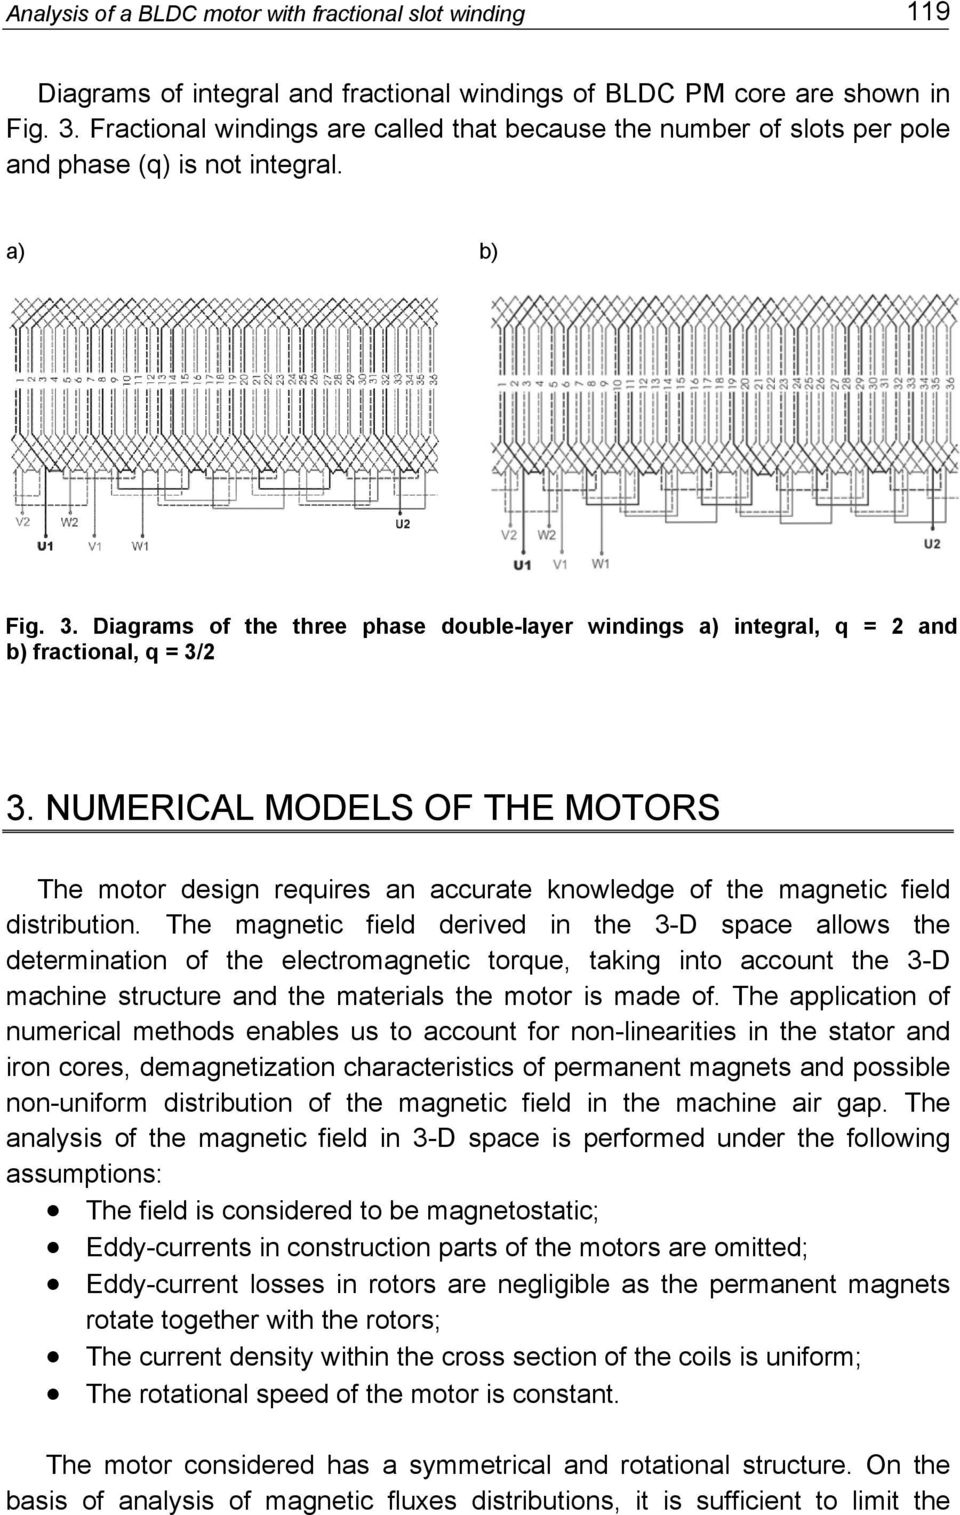 Analysis Of A Bldc Motor With Fractional Slot Winding Pdf 3 Phase Diagram Diagrams The Three Double Layer Windings Integral Q 2